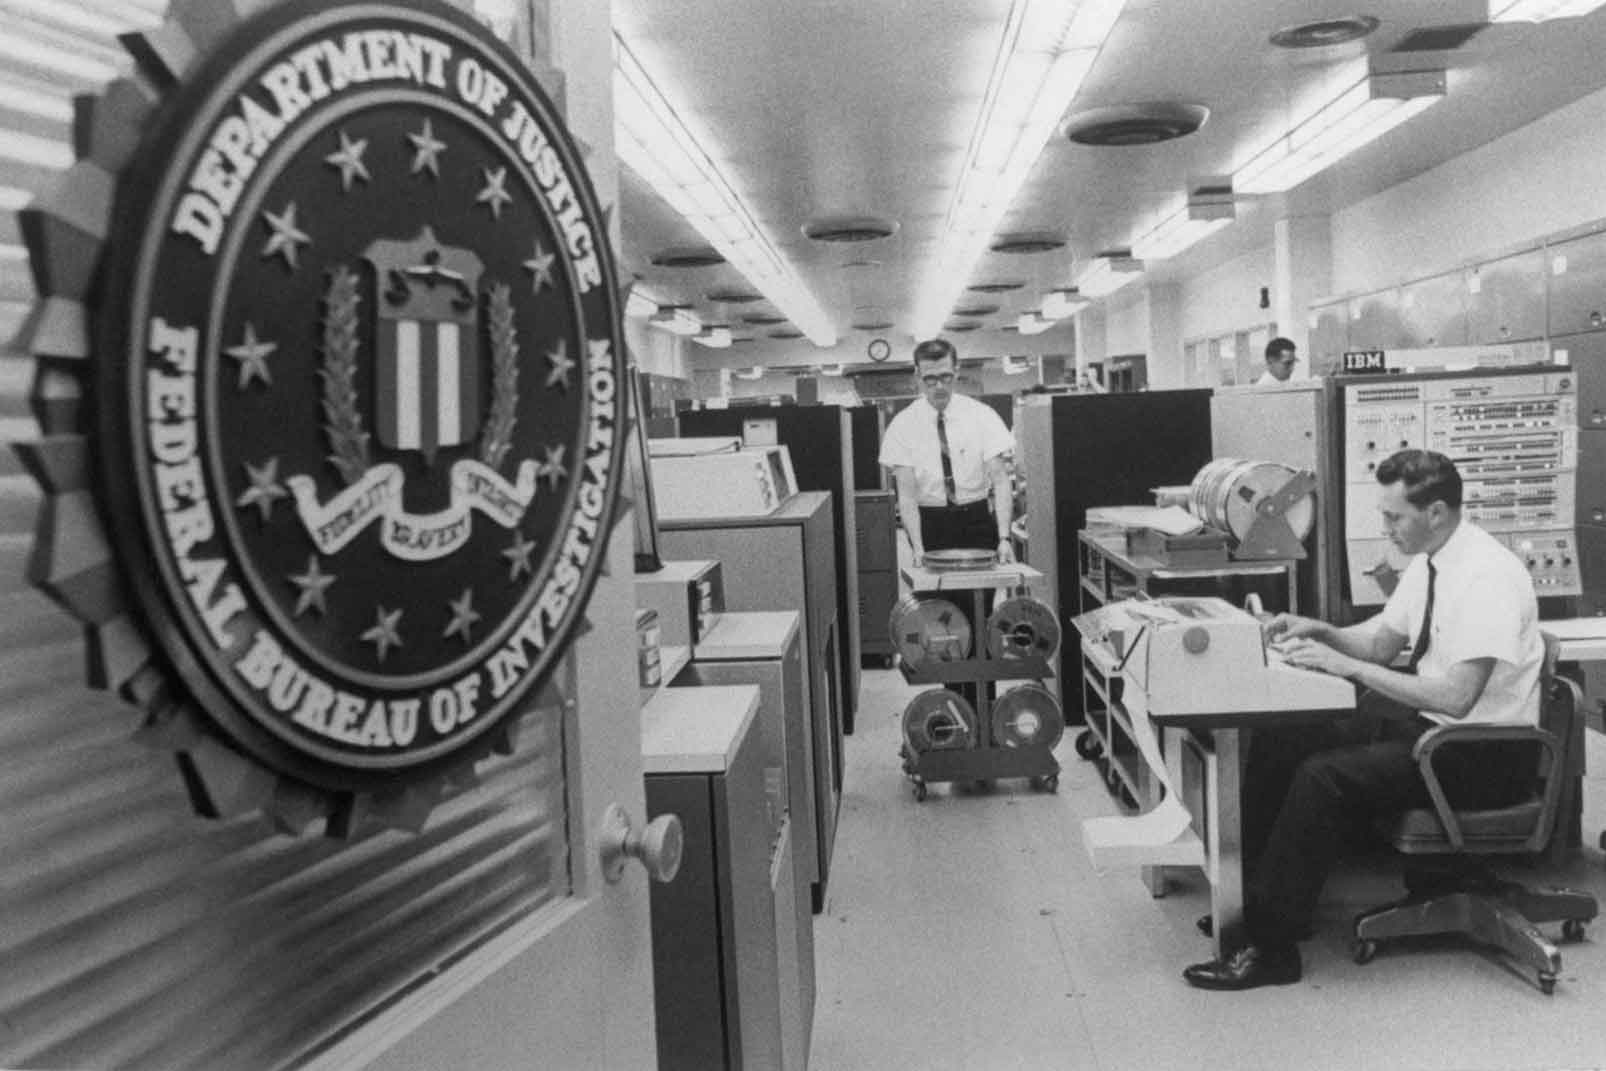 A view of the F.B.I. National Crime Information Center in Washington in 1967. In the 1960s, lawmakers began to question the government's gathering of Americans' data. Photo: Bettmann, via Getty Images